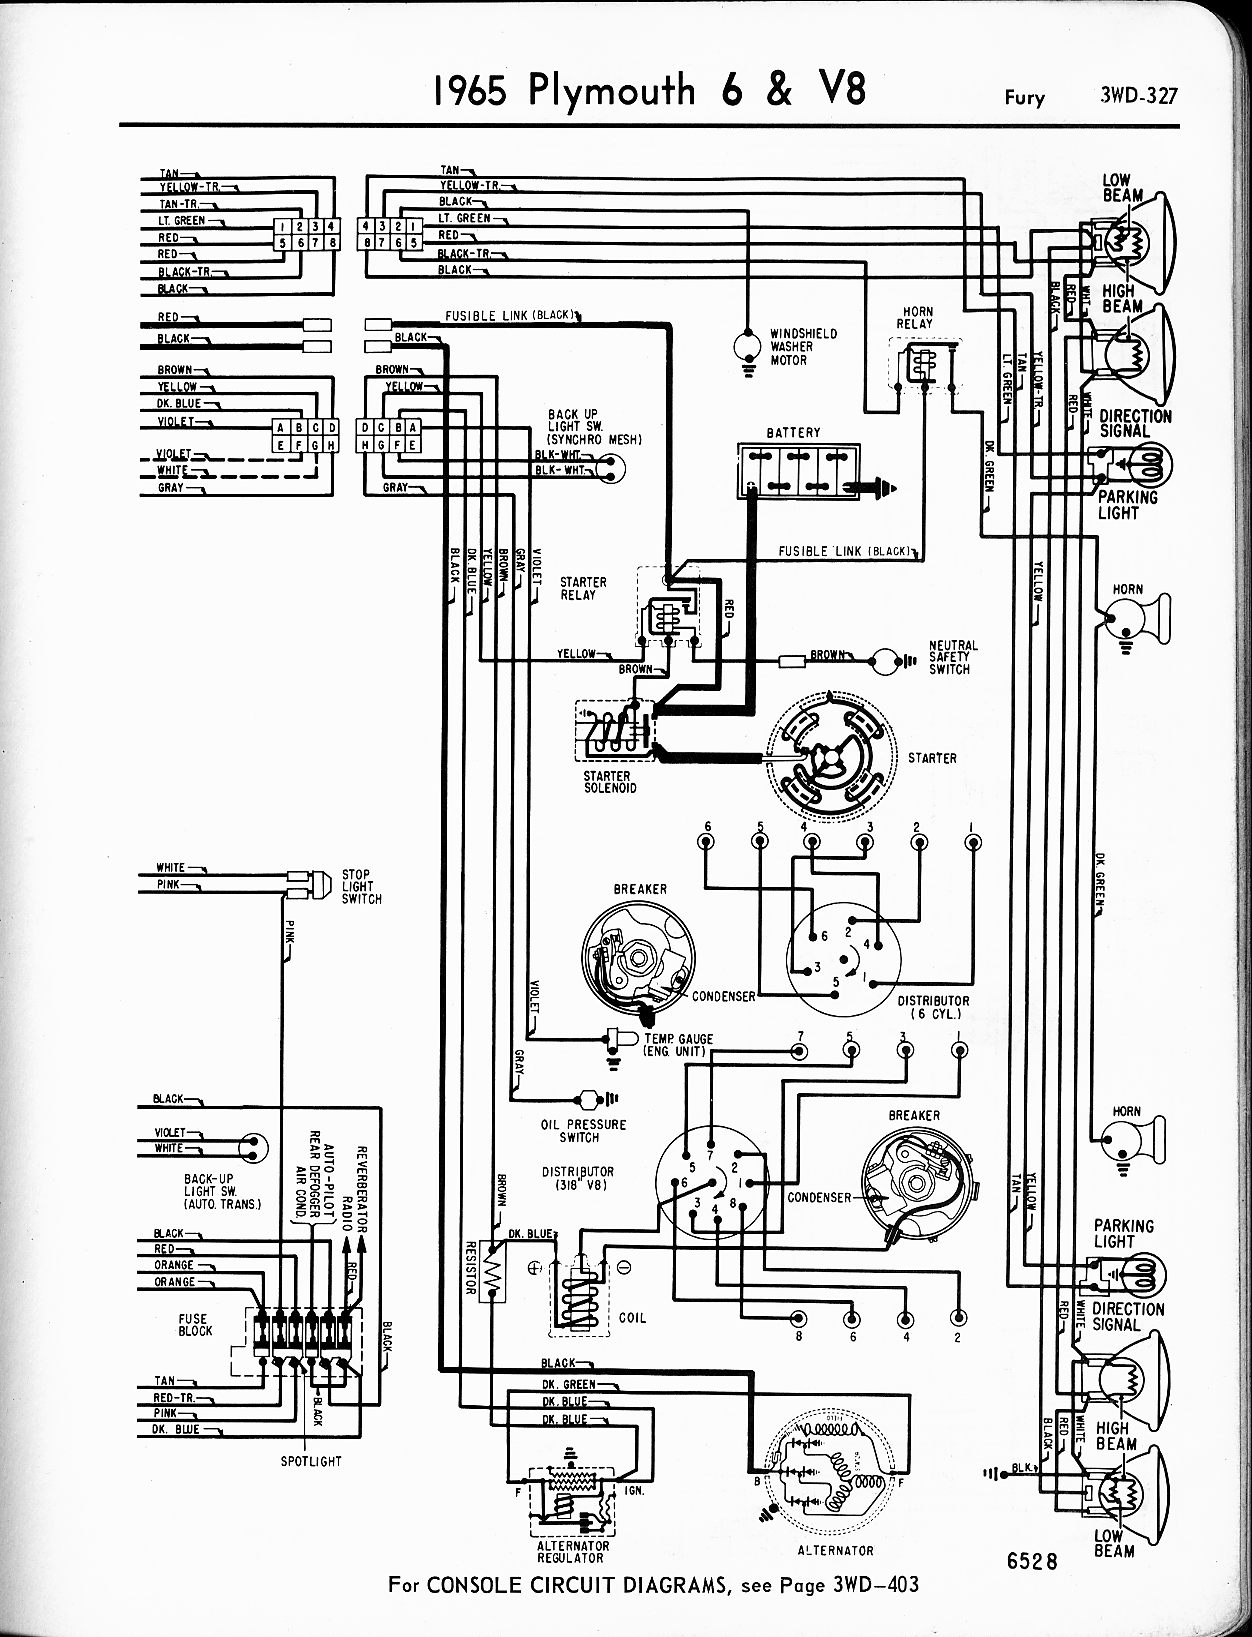 68 valiant wiring diagram wiring diagram schematics 1966 mgb wiring diagram  1965 plymouth valiant wiring diagram